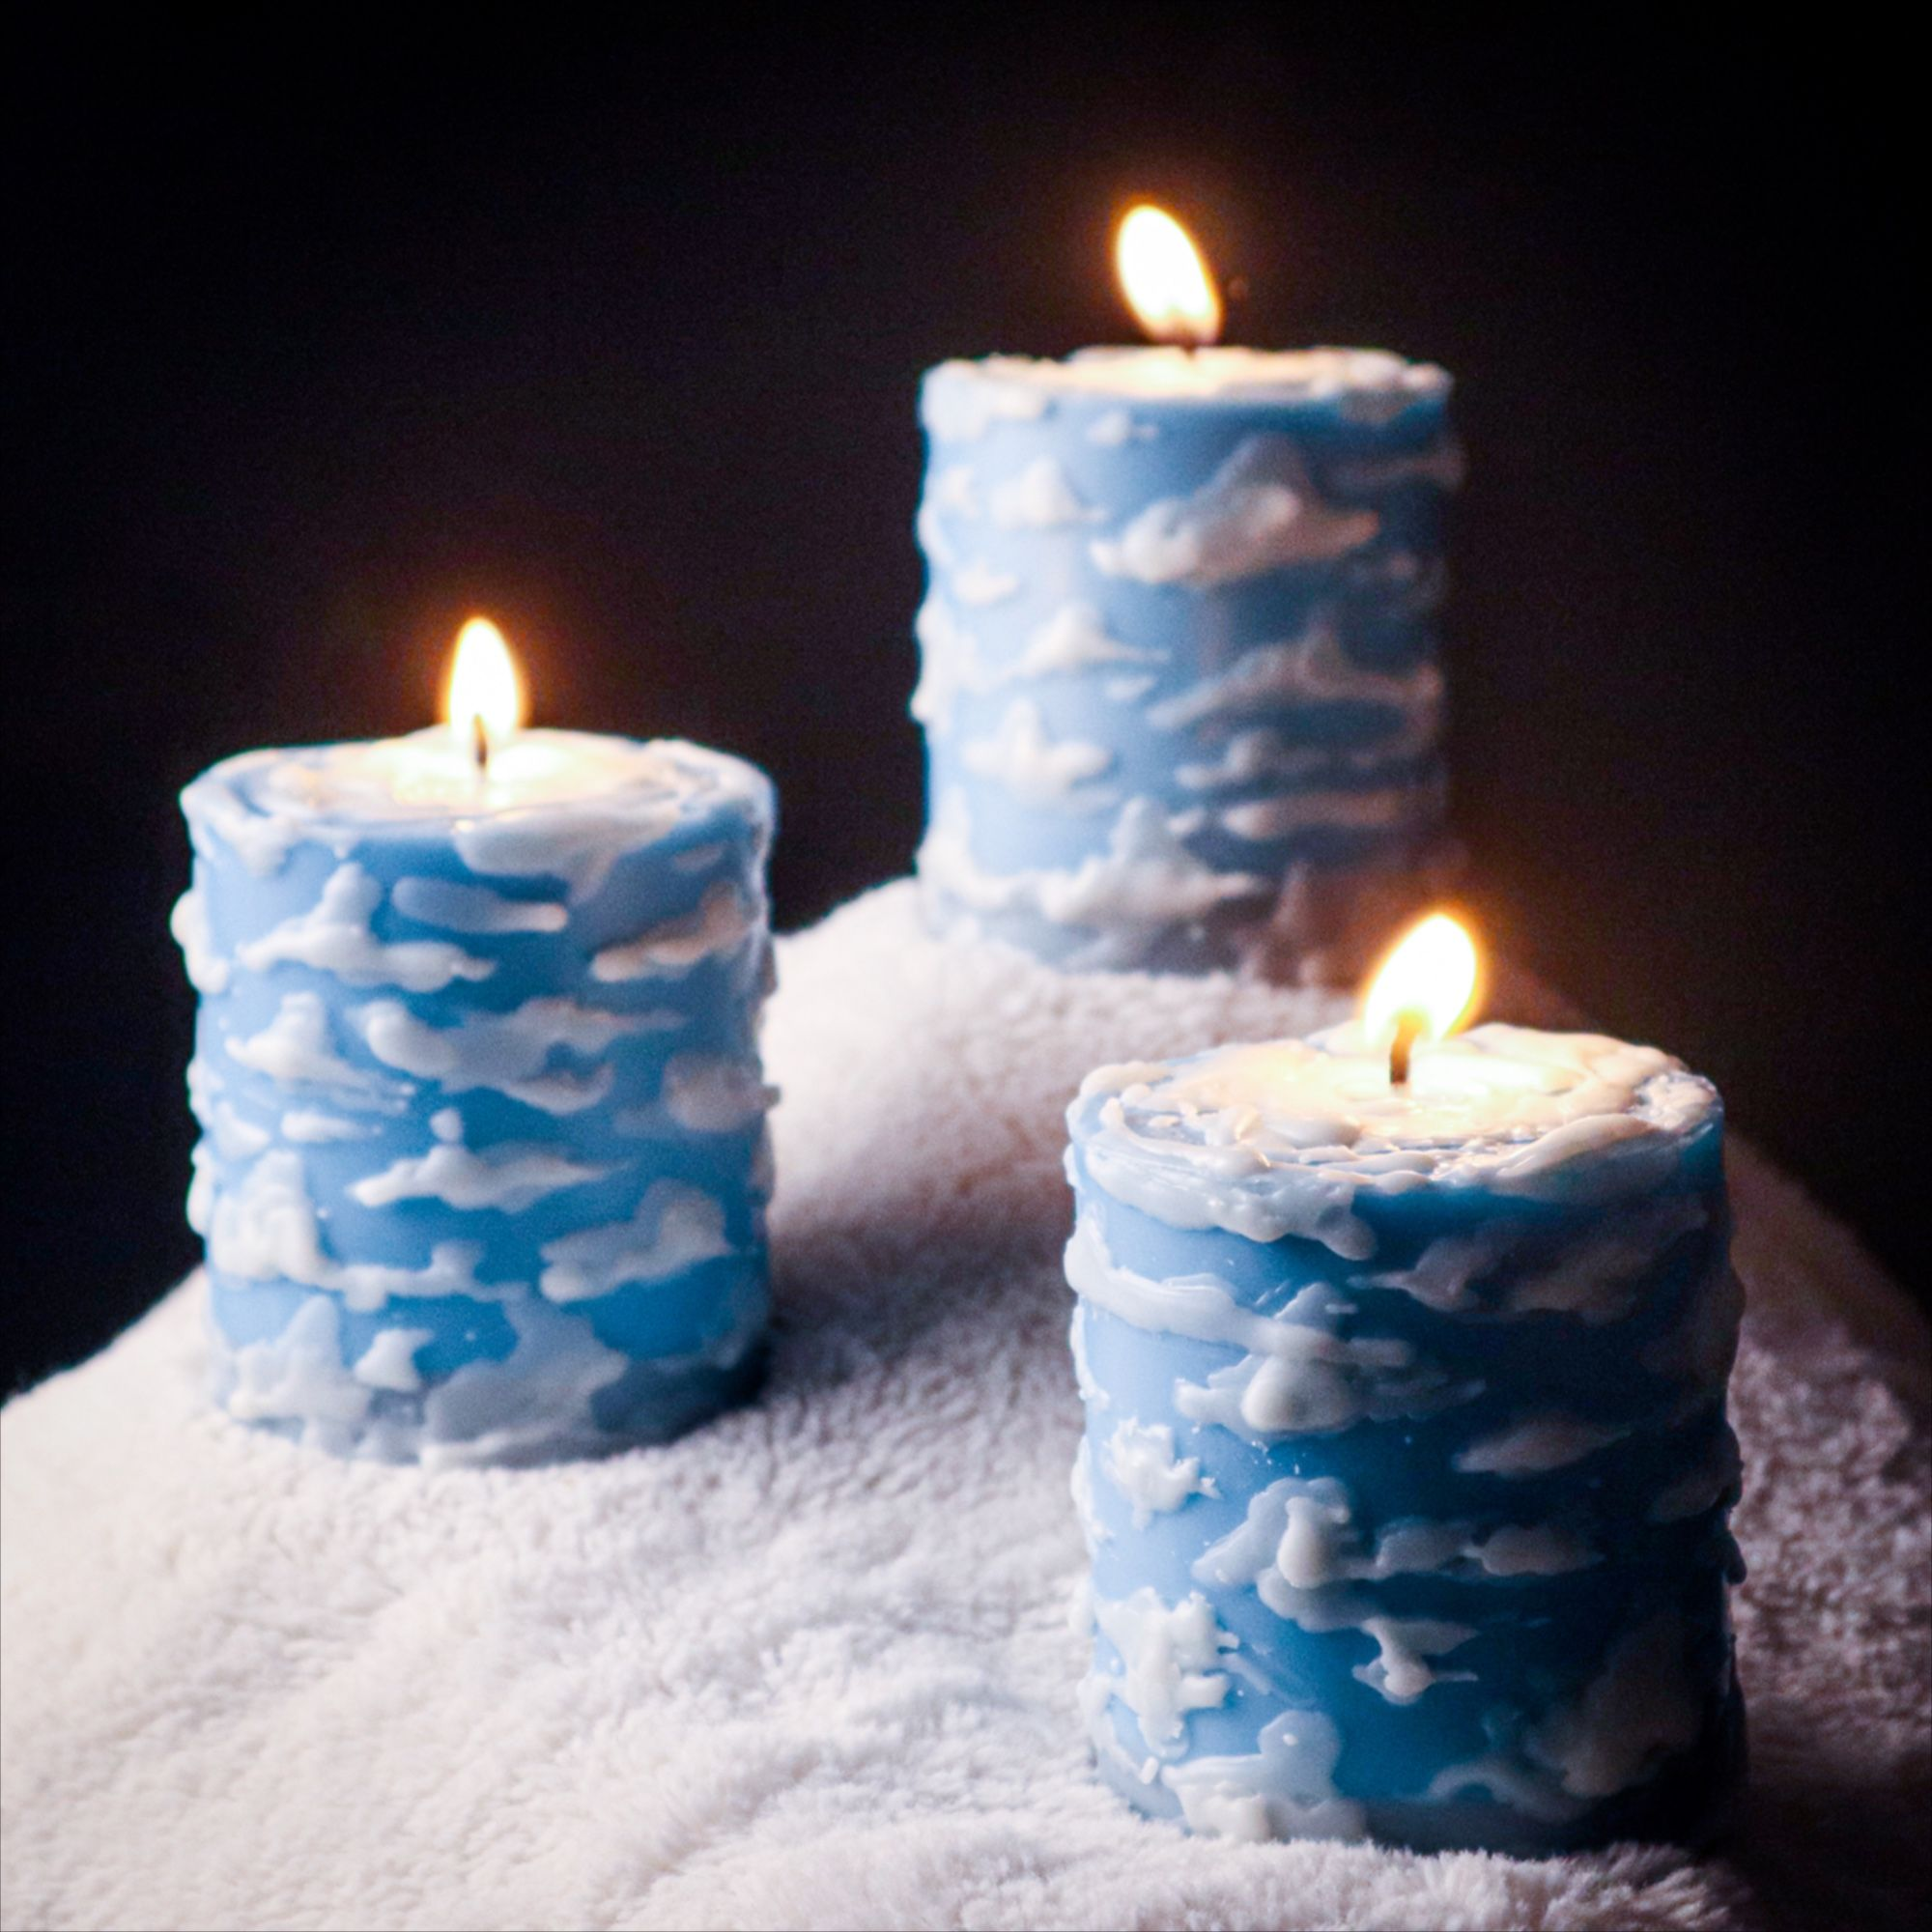 Cloud Candle Sky Blue Soy Pillar Candle Vegan Hand Etsy In 2021 Soy Pillar Candles Pillar Candles Candles